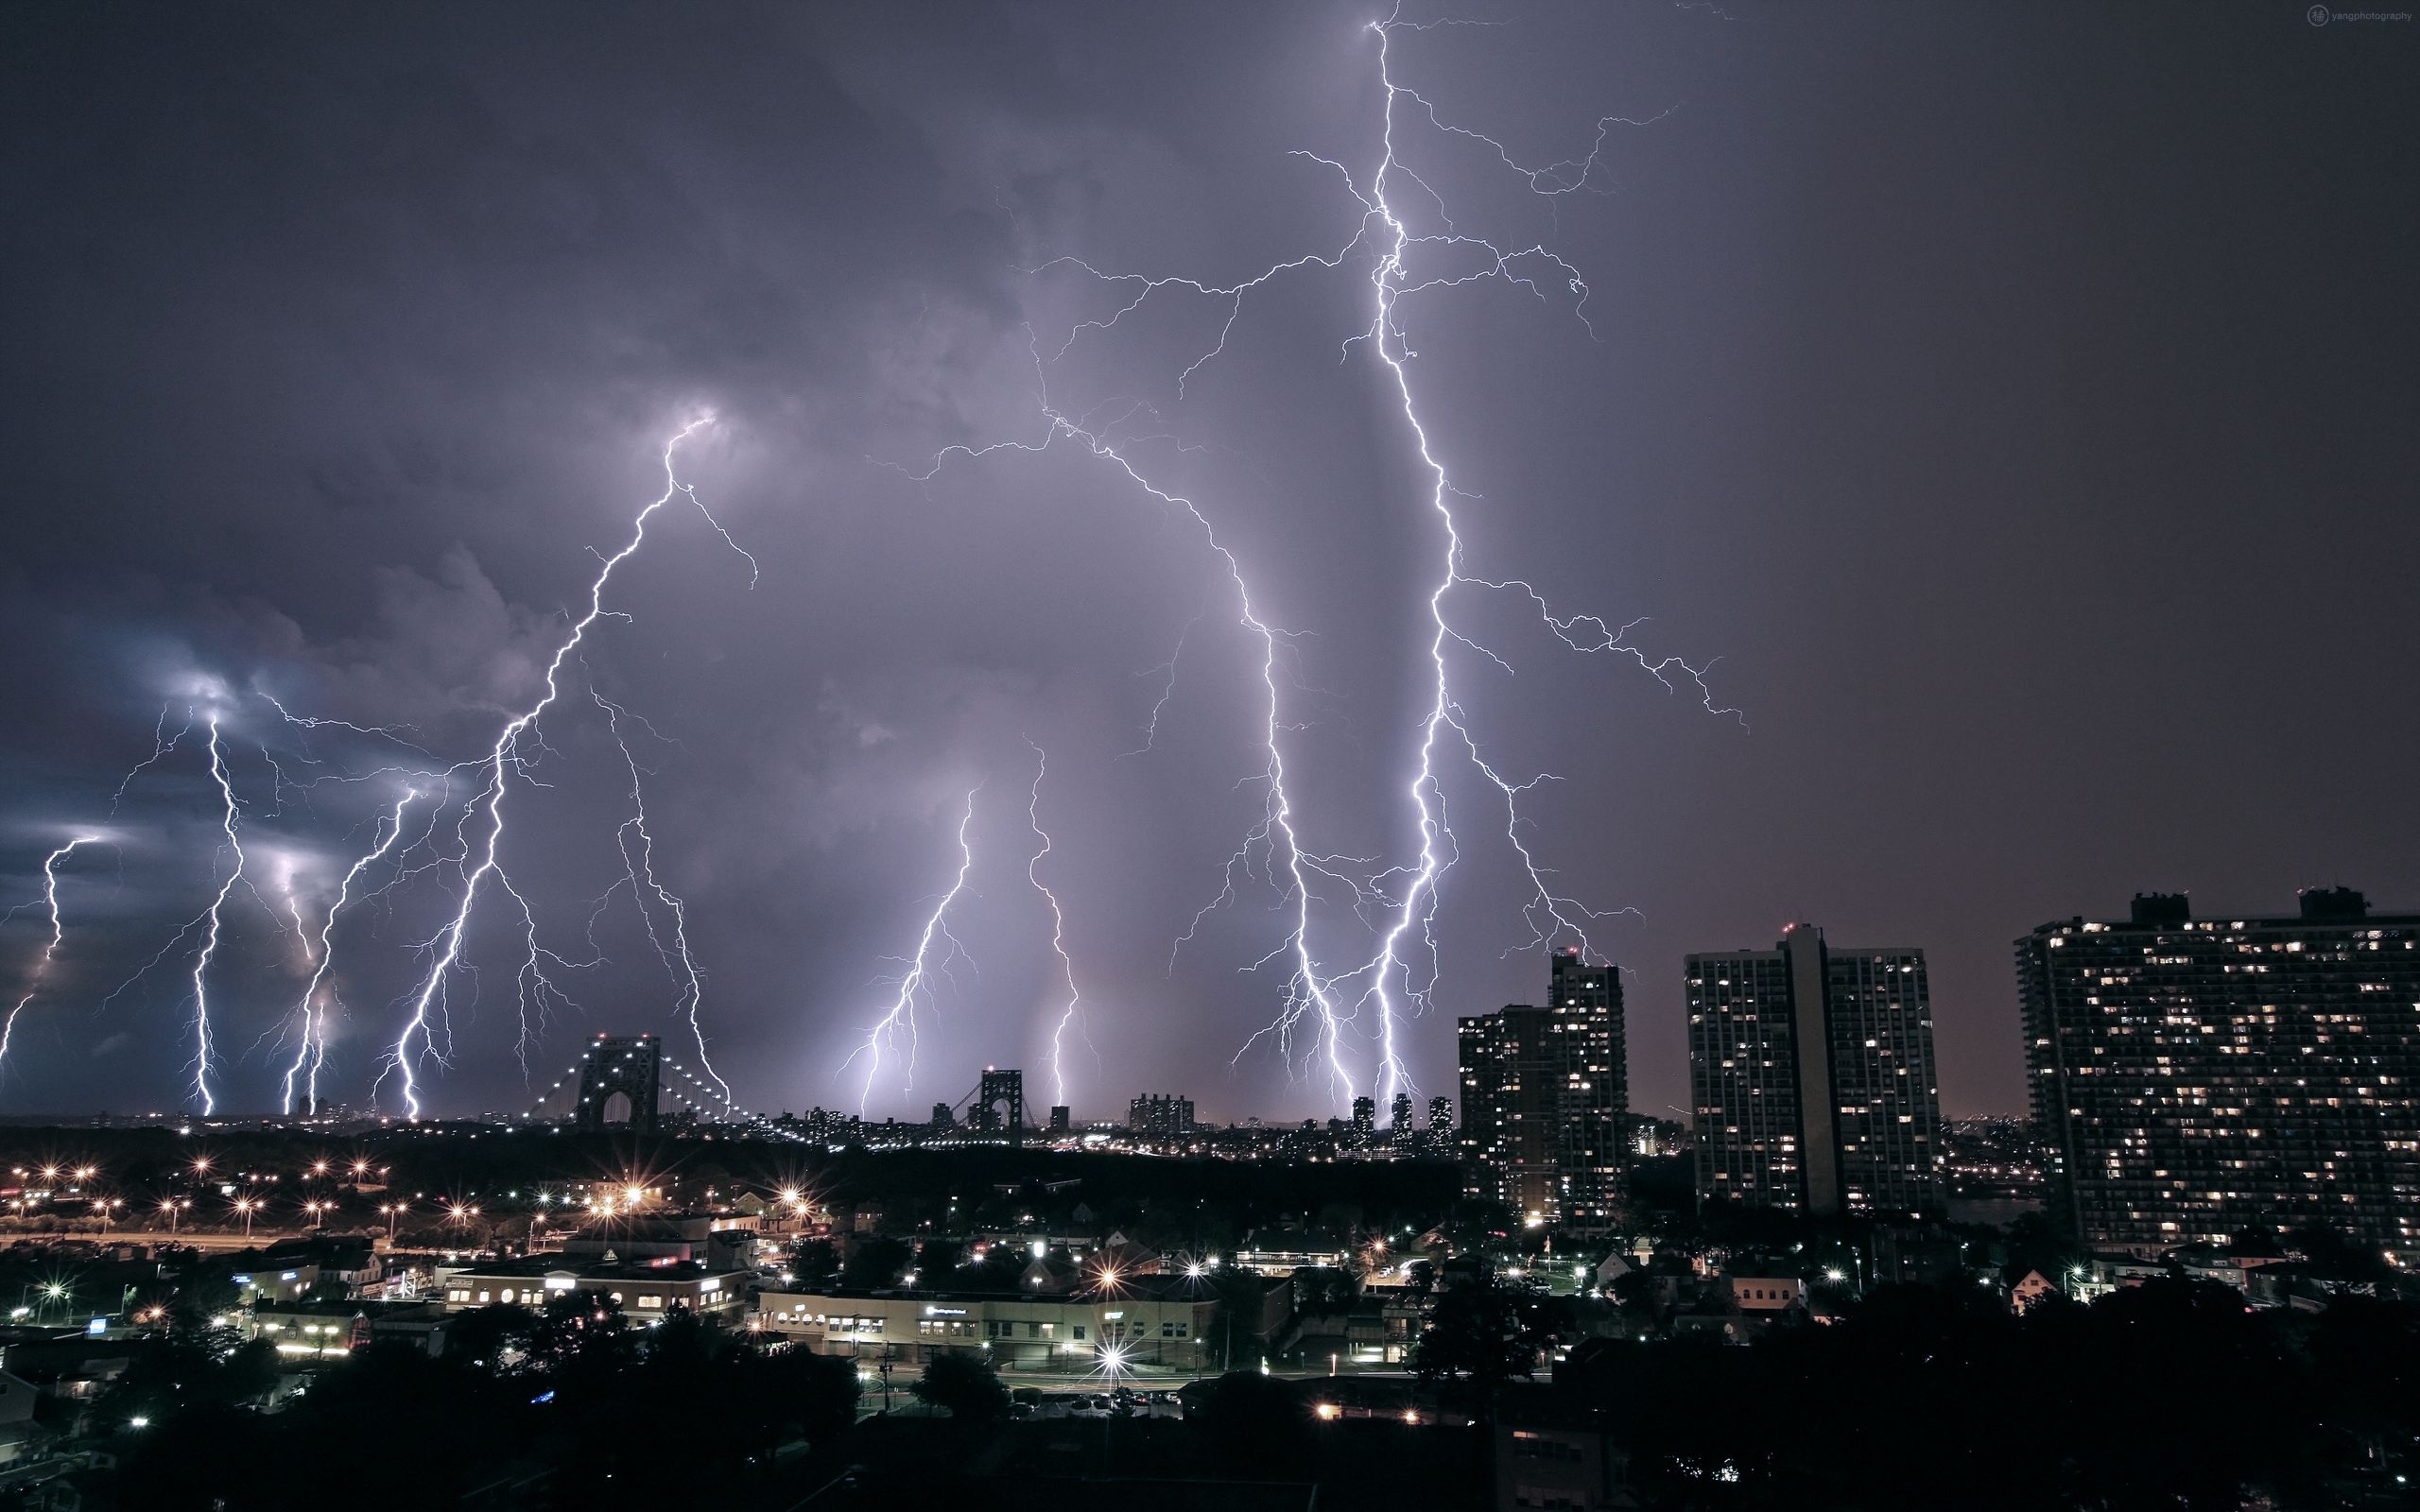 Lightning Storm Live Wallpaper Android Apps on Google Play